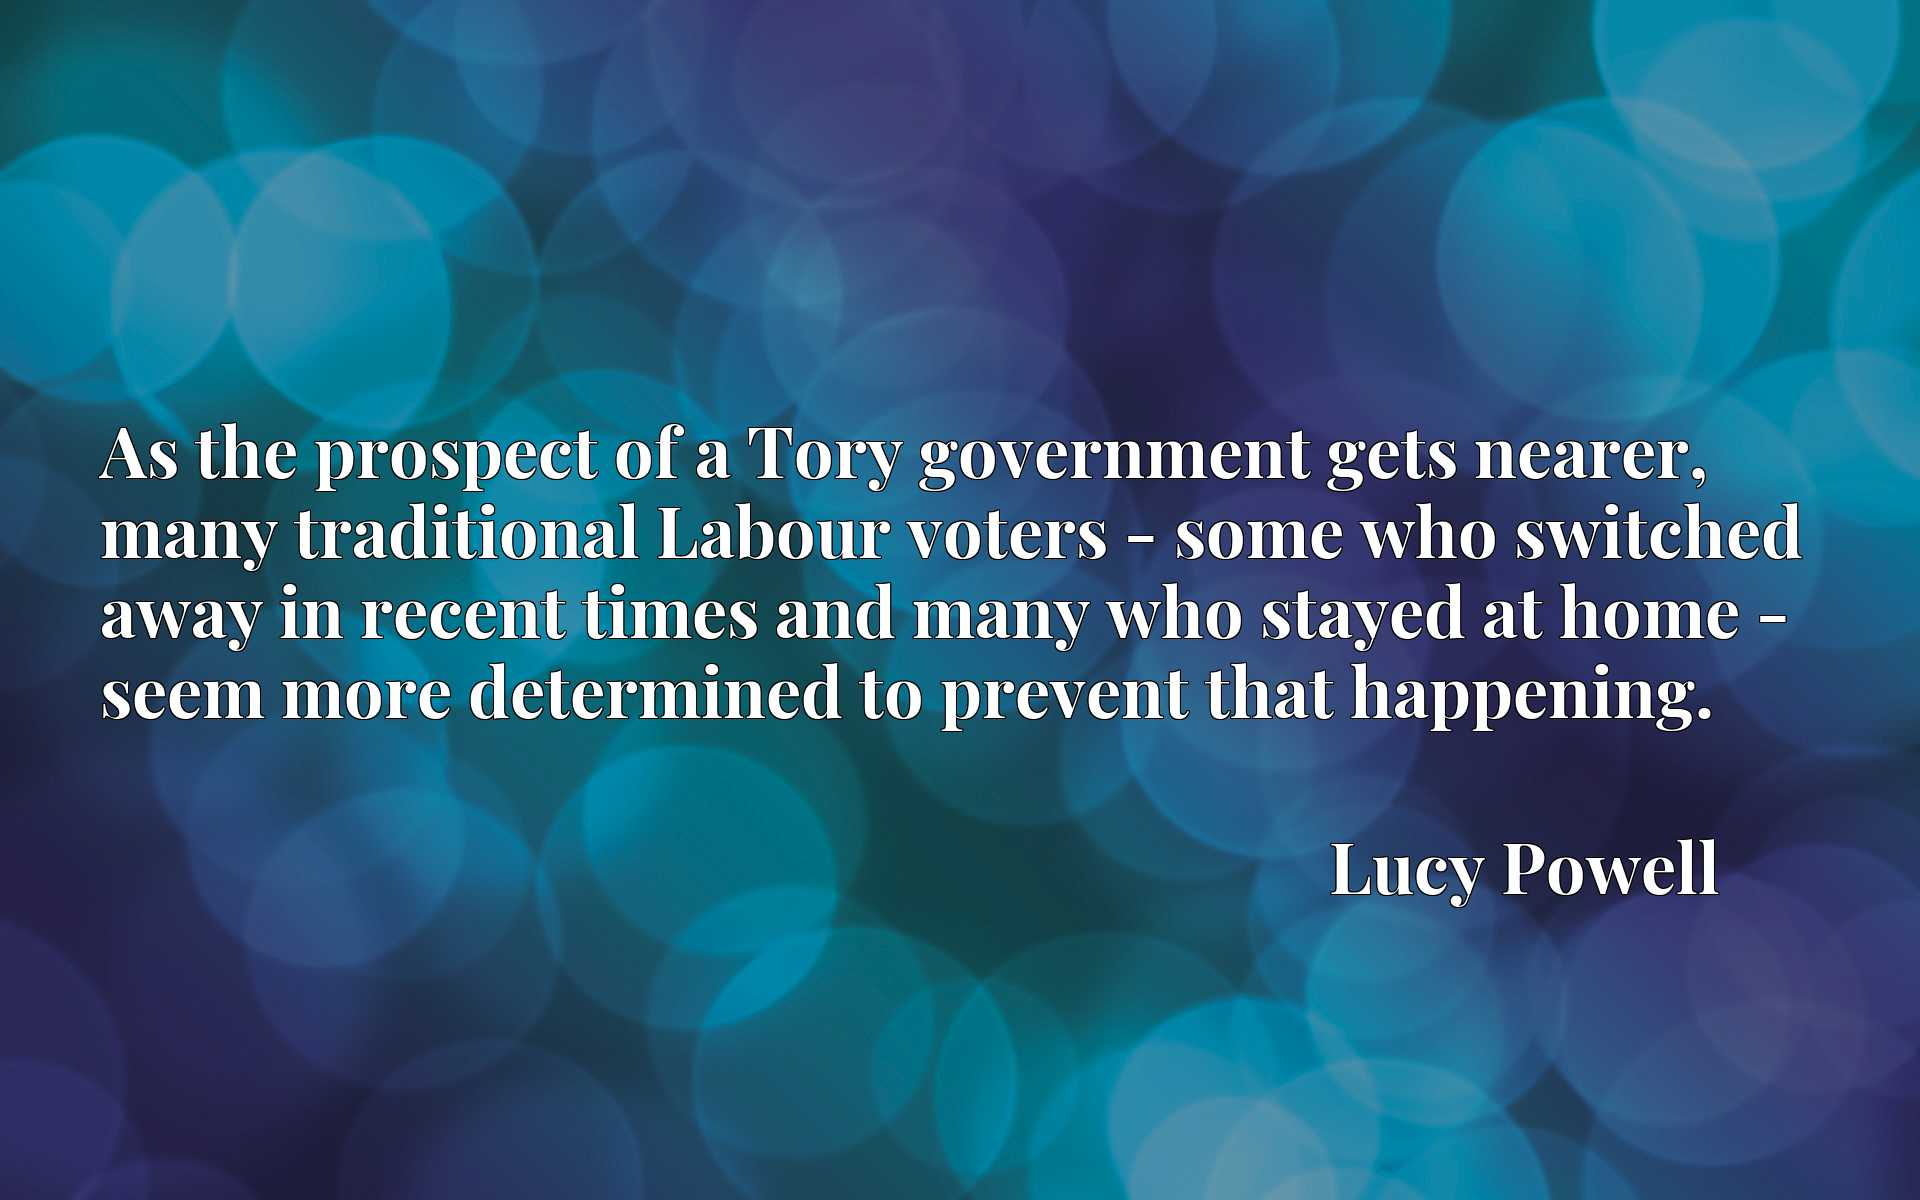 As the prospect of a Tory government gets nearer, many traditional Labour voters - some who switched away in recent times and many who stayed at home - seem more determined to prevent that happening.